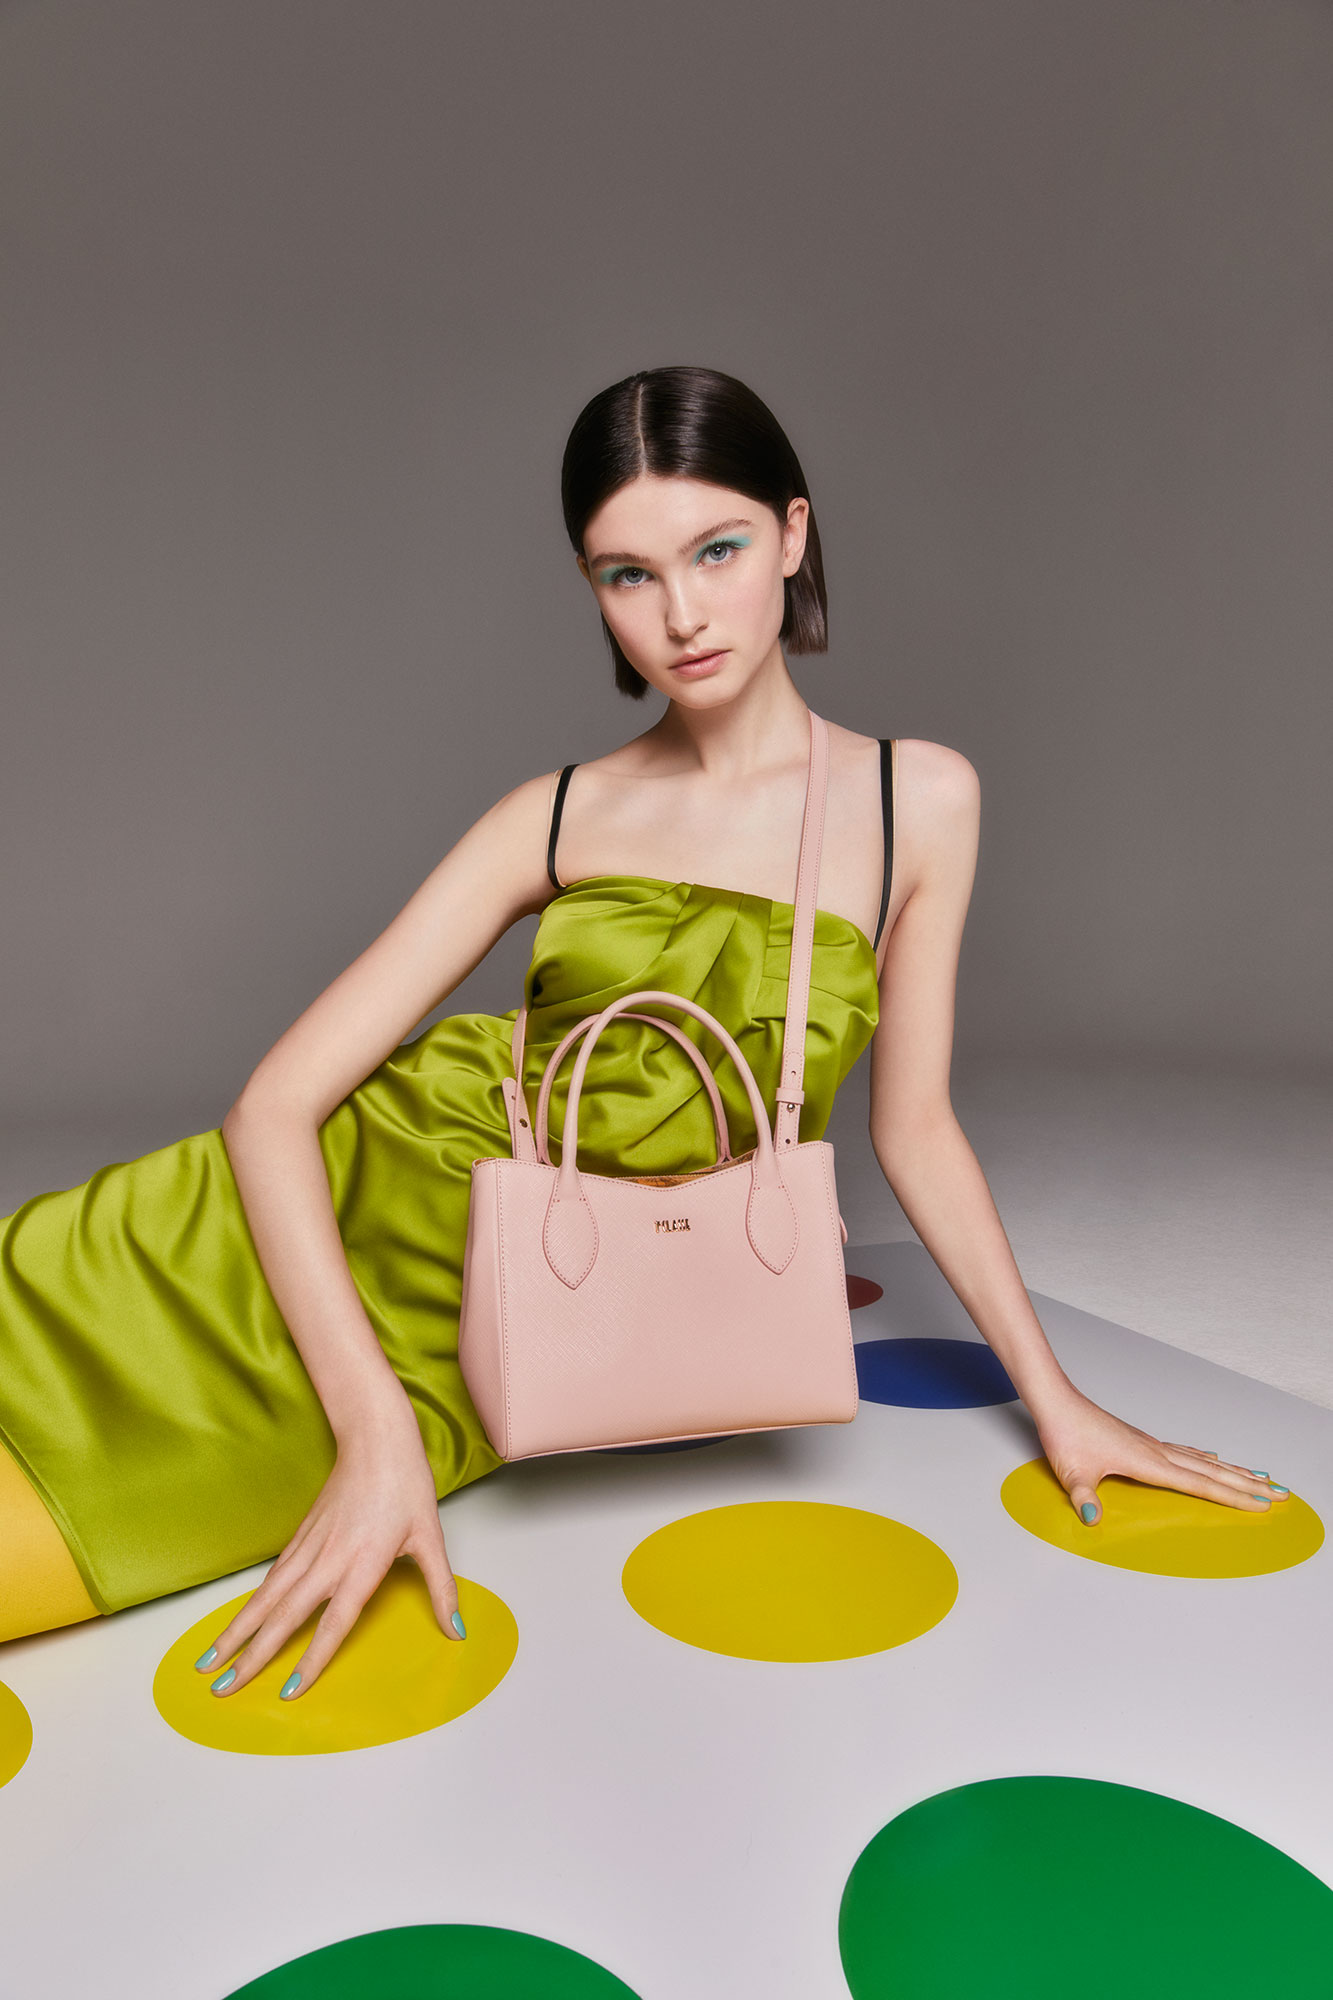 iO Donna special accessories 2019 | Johnny Kangasniemi | Ulrike Lang | Numerique Retouch Photo Retouching Studio